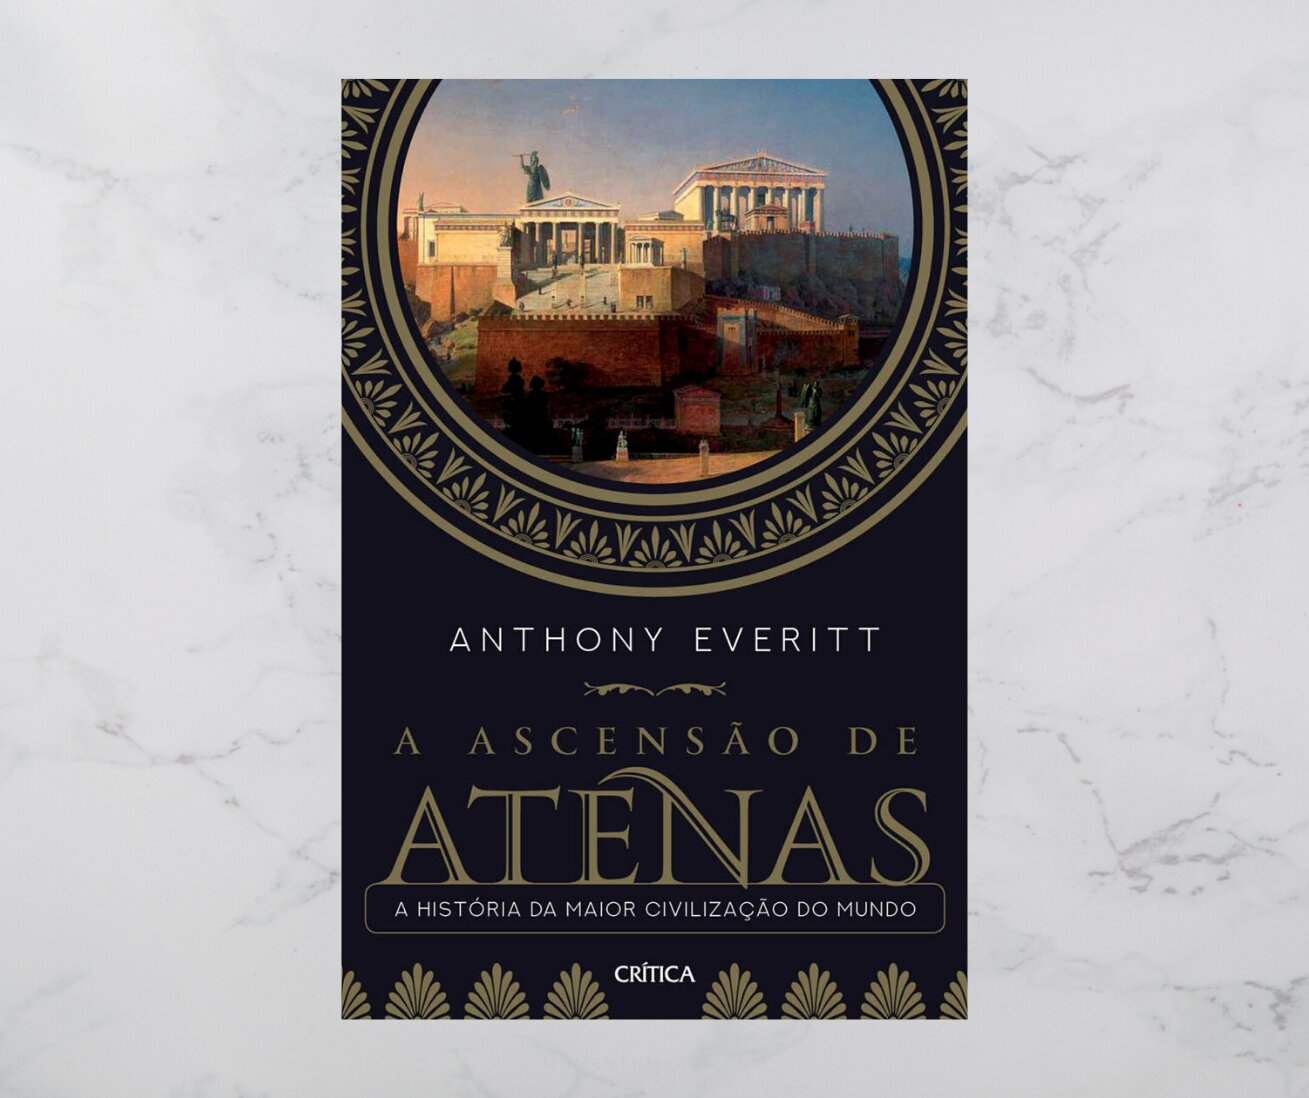 Resenha: A ascensão de Atenas, de Anthony Everitt